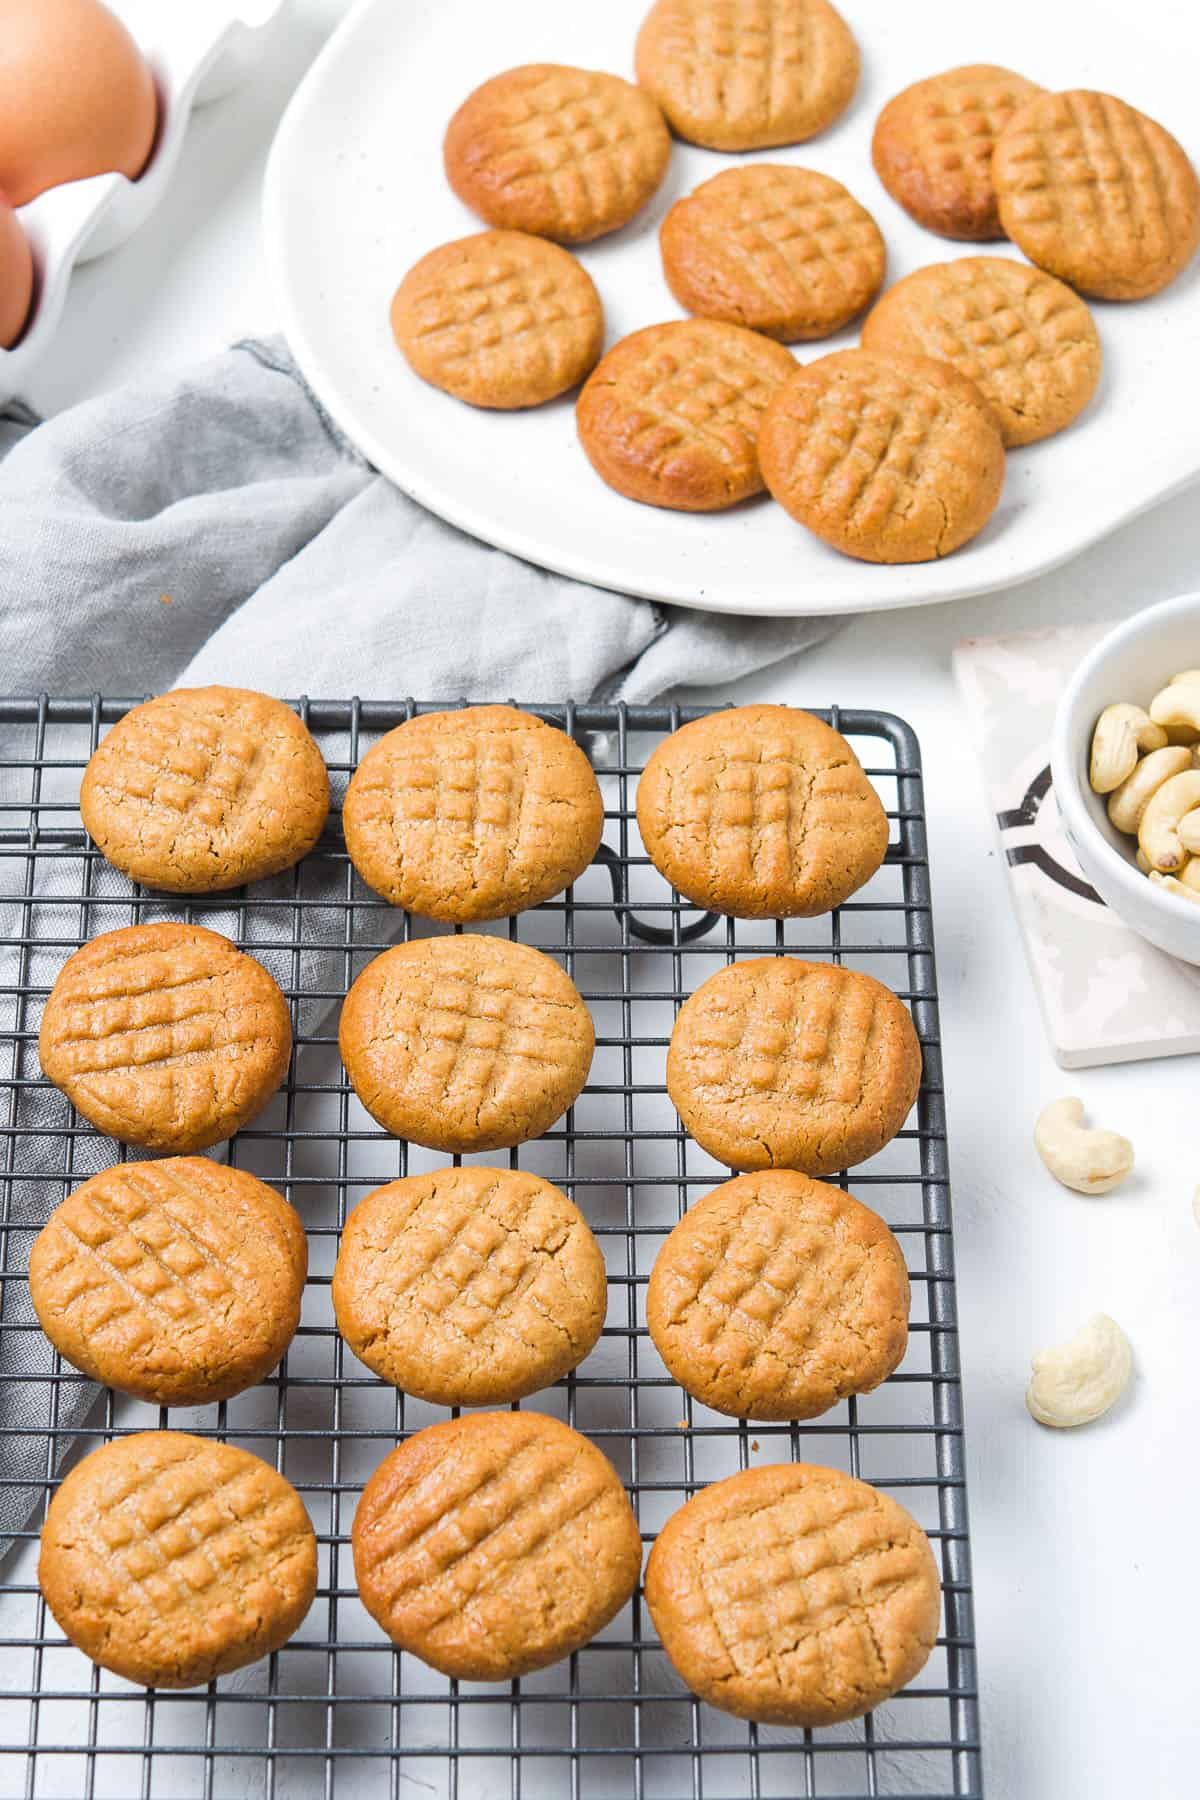 cookies on a cooling rack, with some on a plate in the background, surrounded by some cashews.